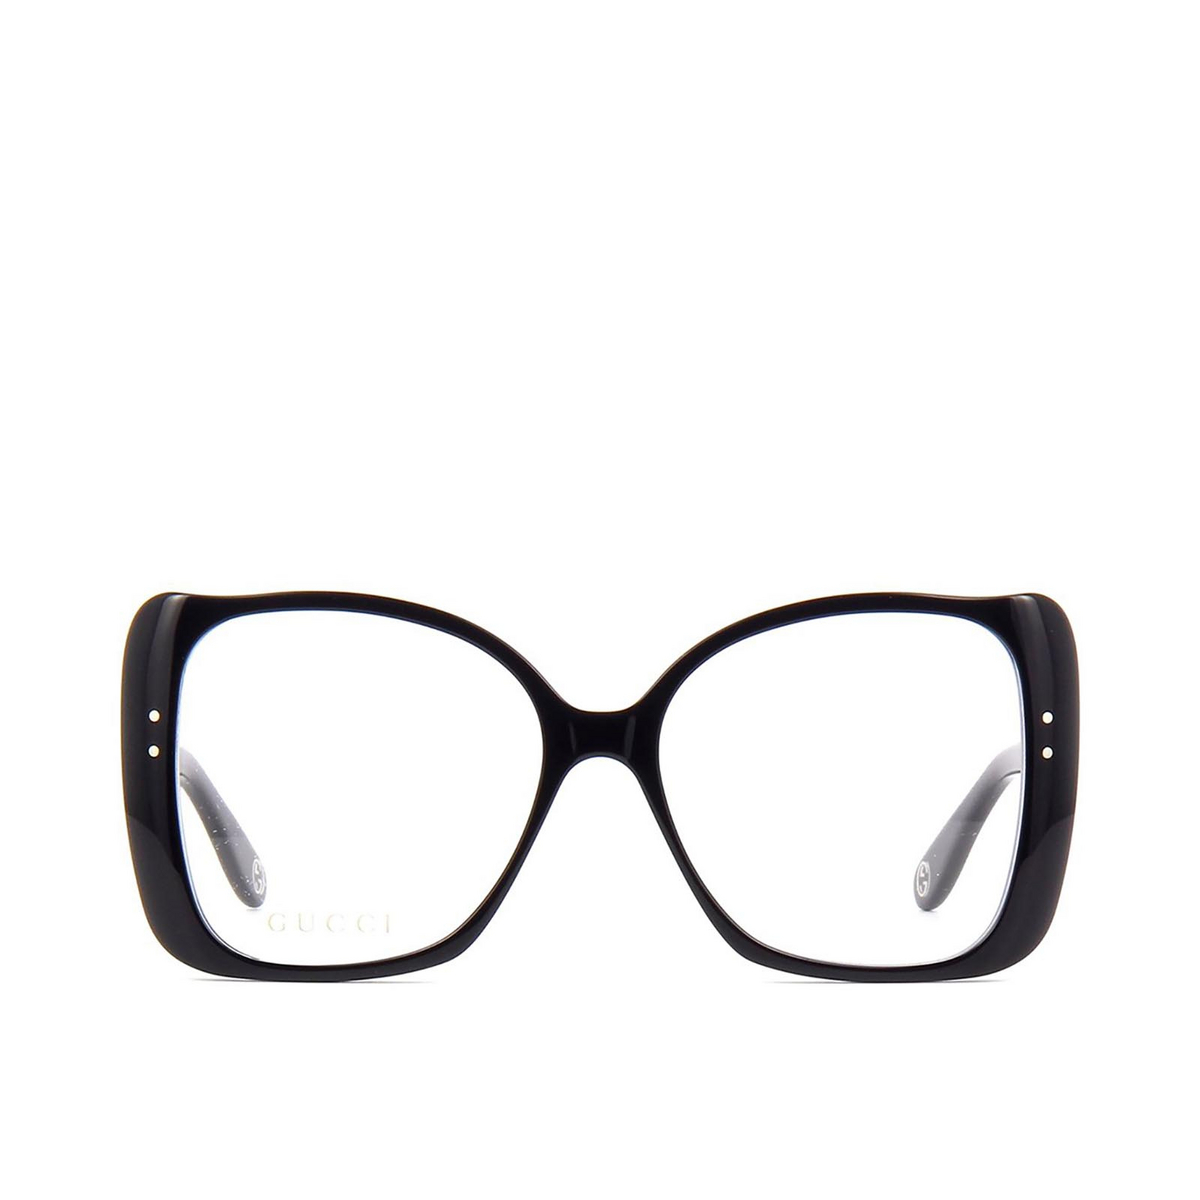 Gucci® Butterfly Eyeglasses: GG0473O color Black 001 - front view.